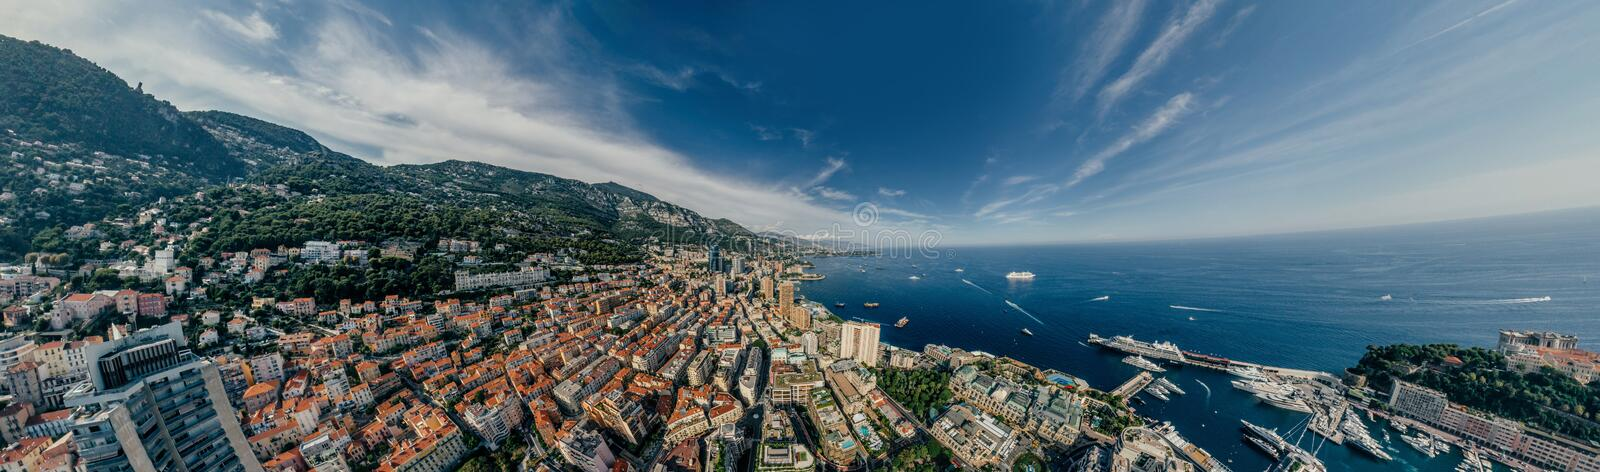 Mountains in Monaco Monte-Carlo city riviera Drone summer photo Air 360 vr virtual reality drone panorama. Sphere Panorama Summer Sea Coastline in Monaco Air royalty free stock photos